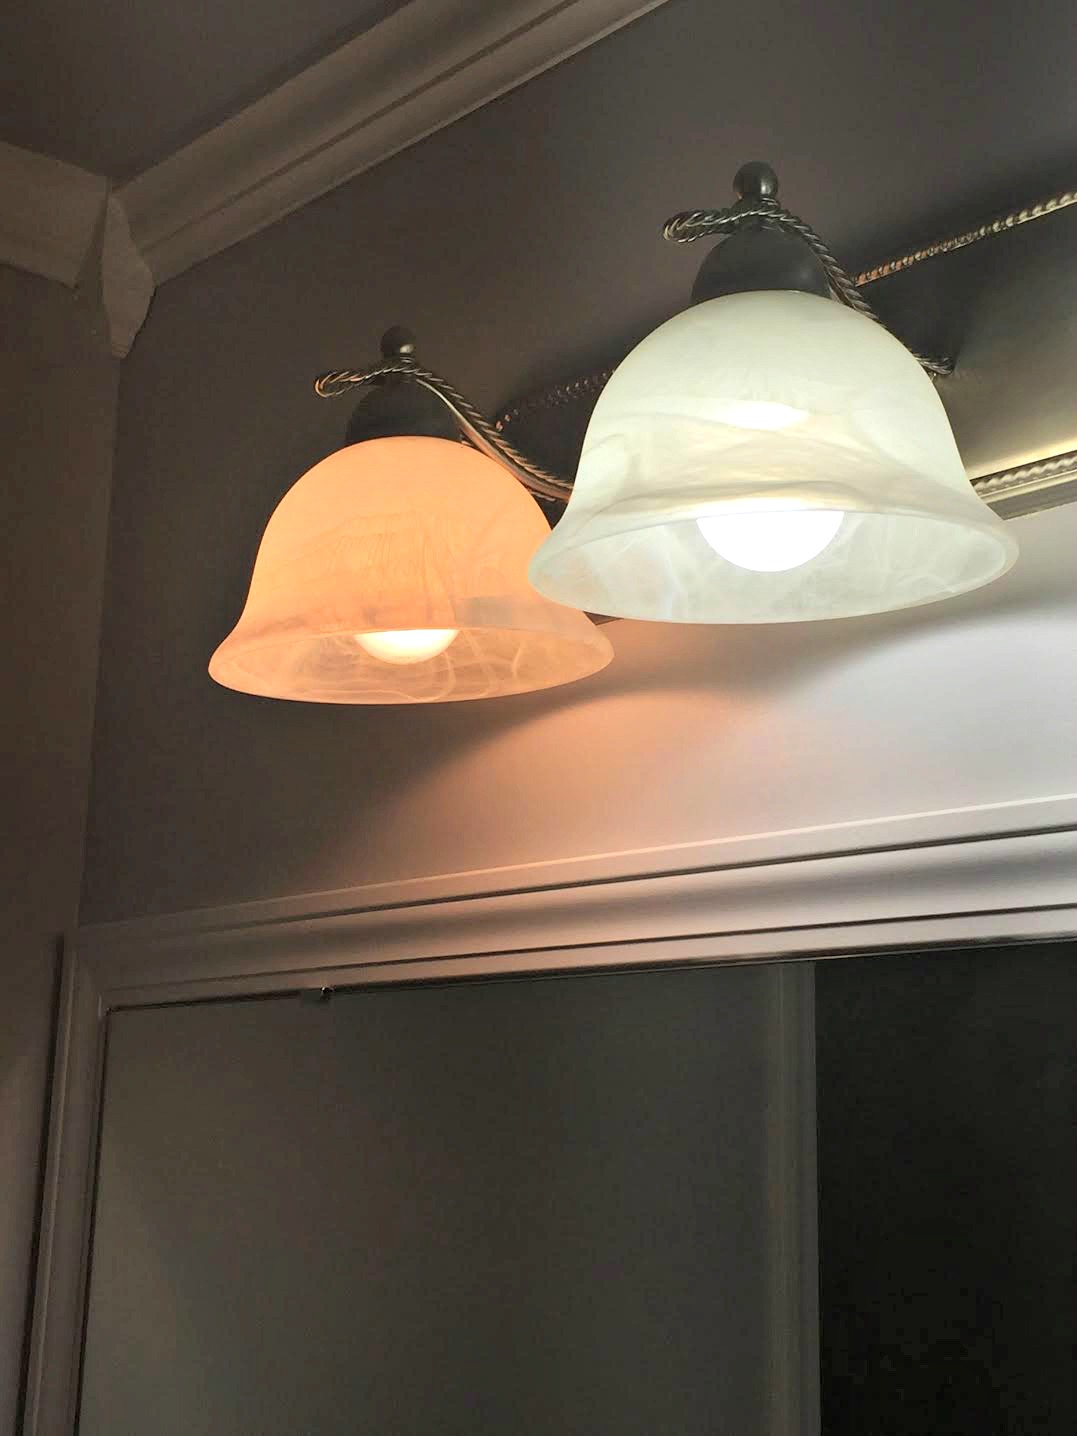 difference between daylight and incandescent bulbs